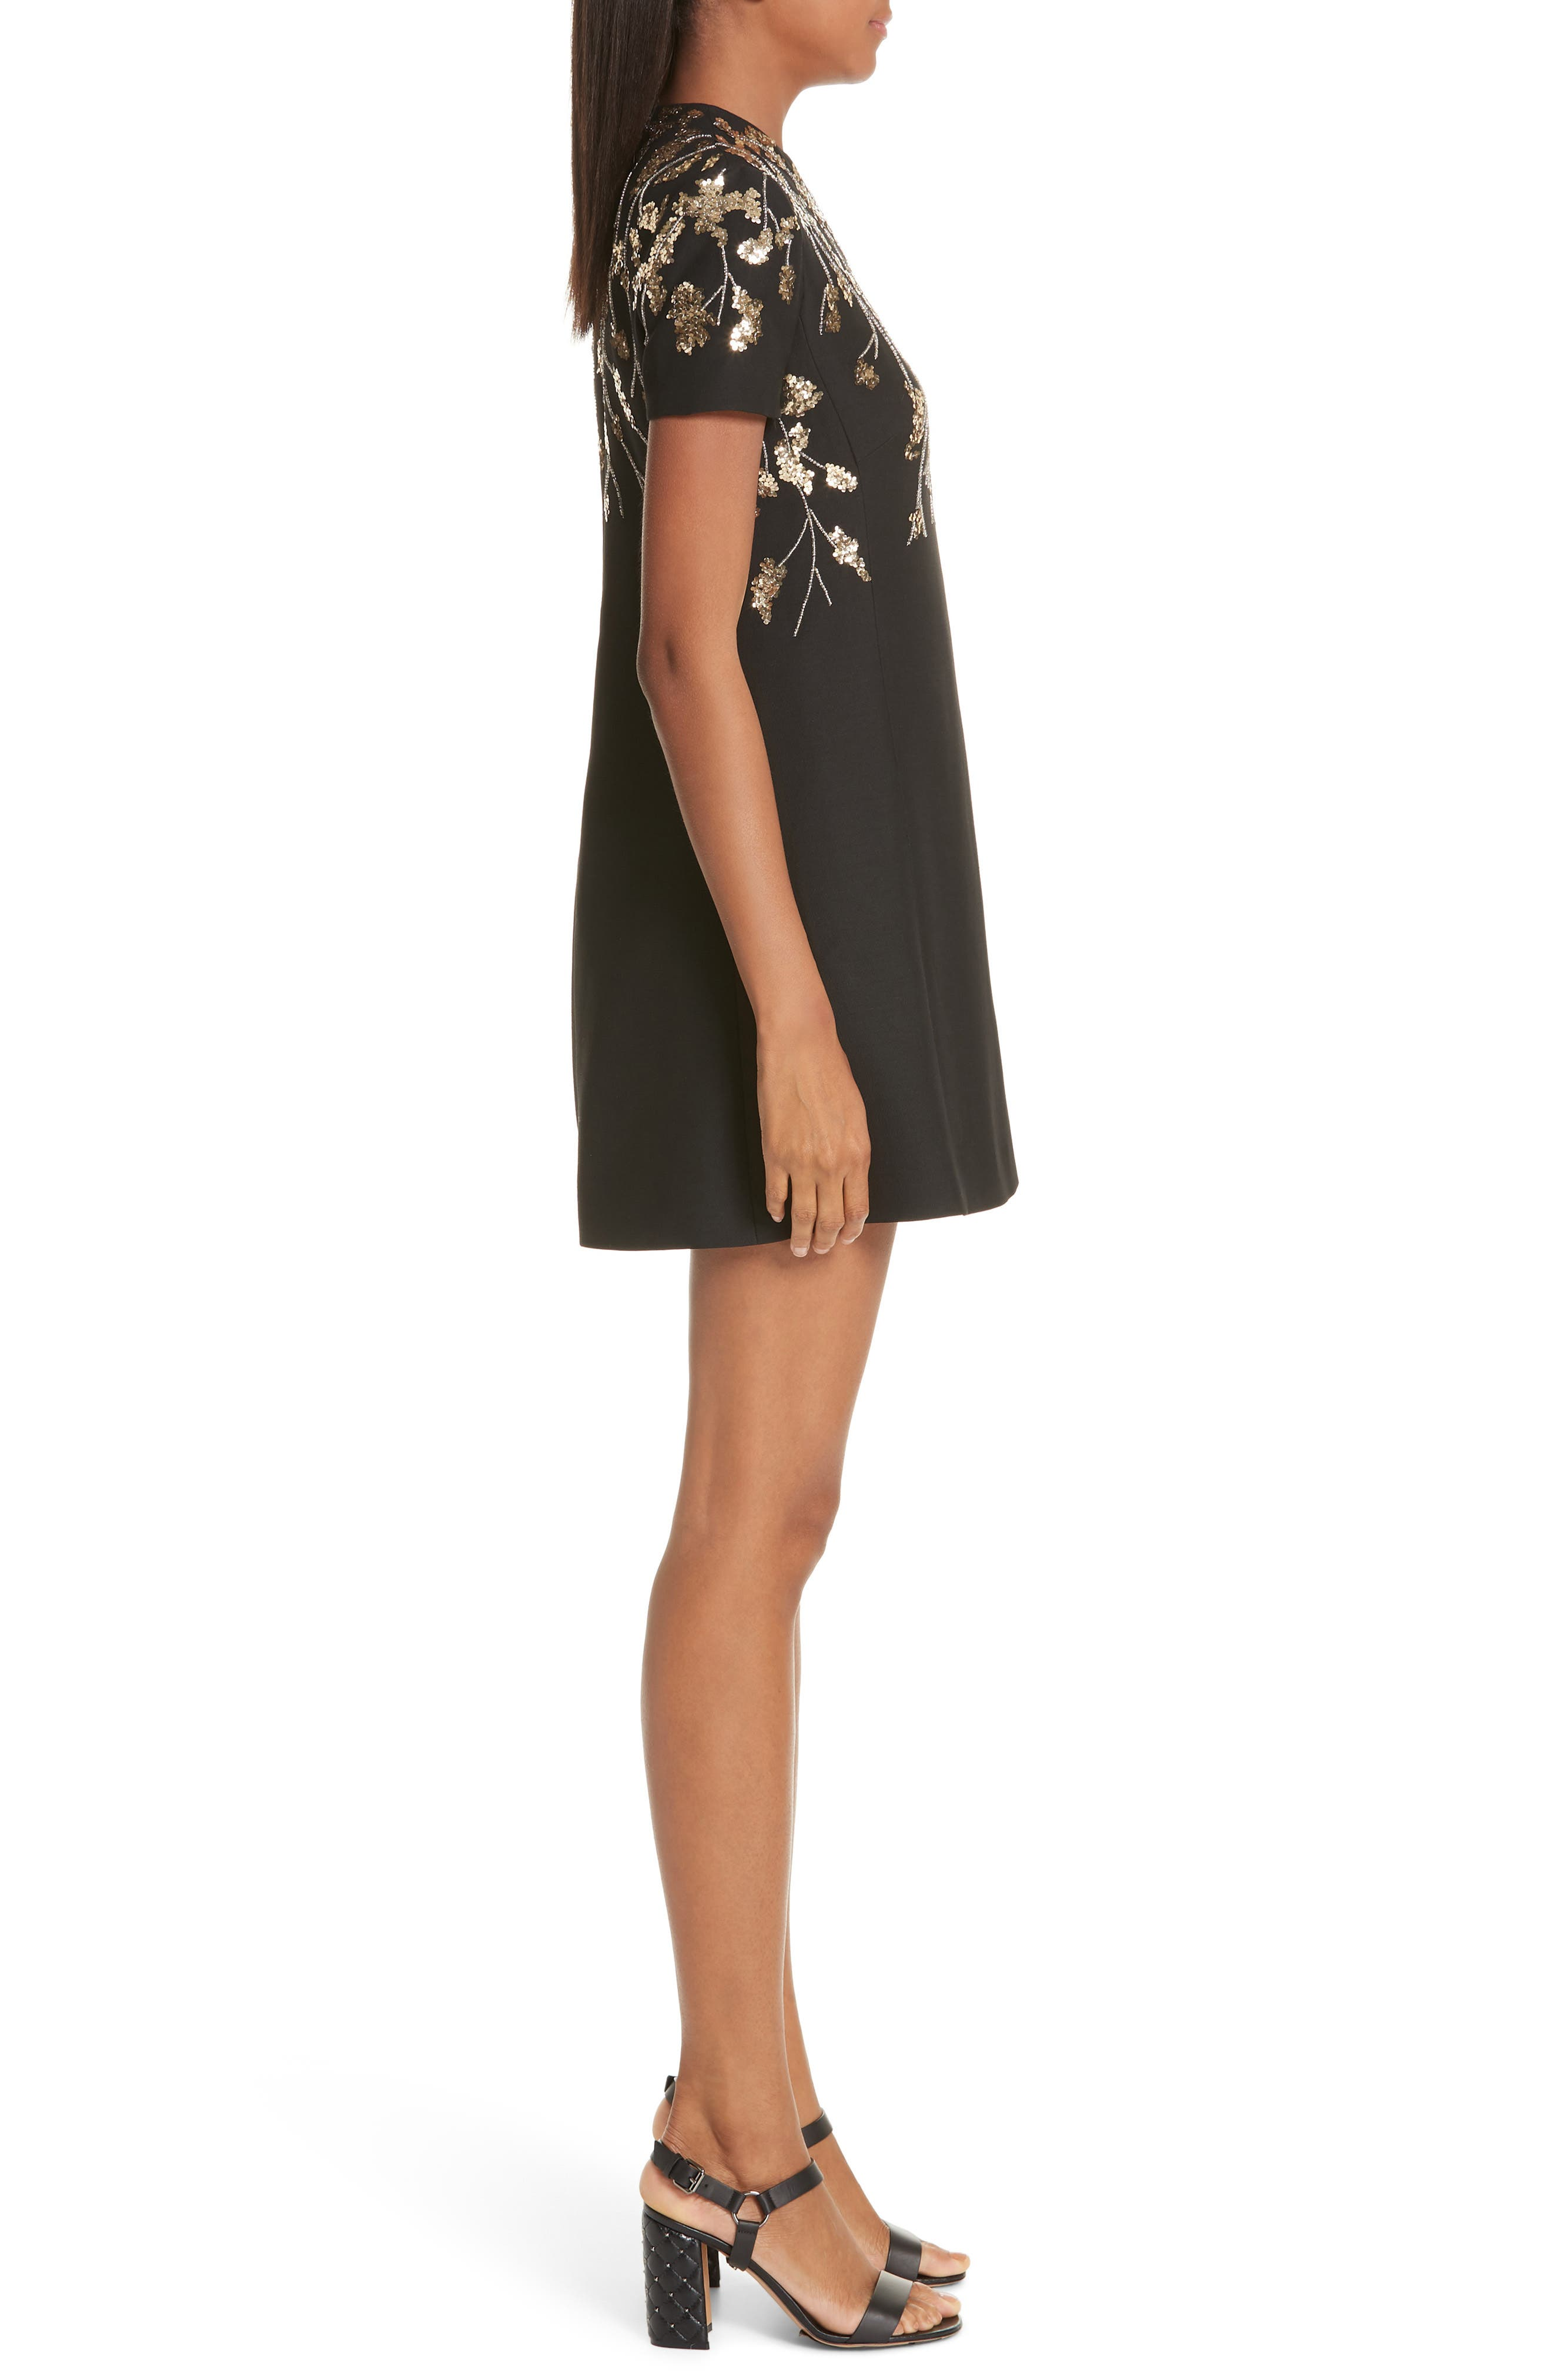 VALENTINO, Floral Embroidered Crepe Couture Dress, Alternate thumbnail 4, color, BLACK GOLD